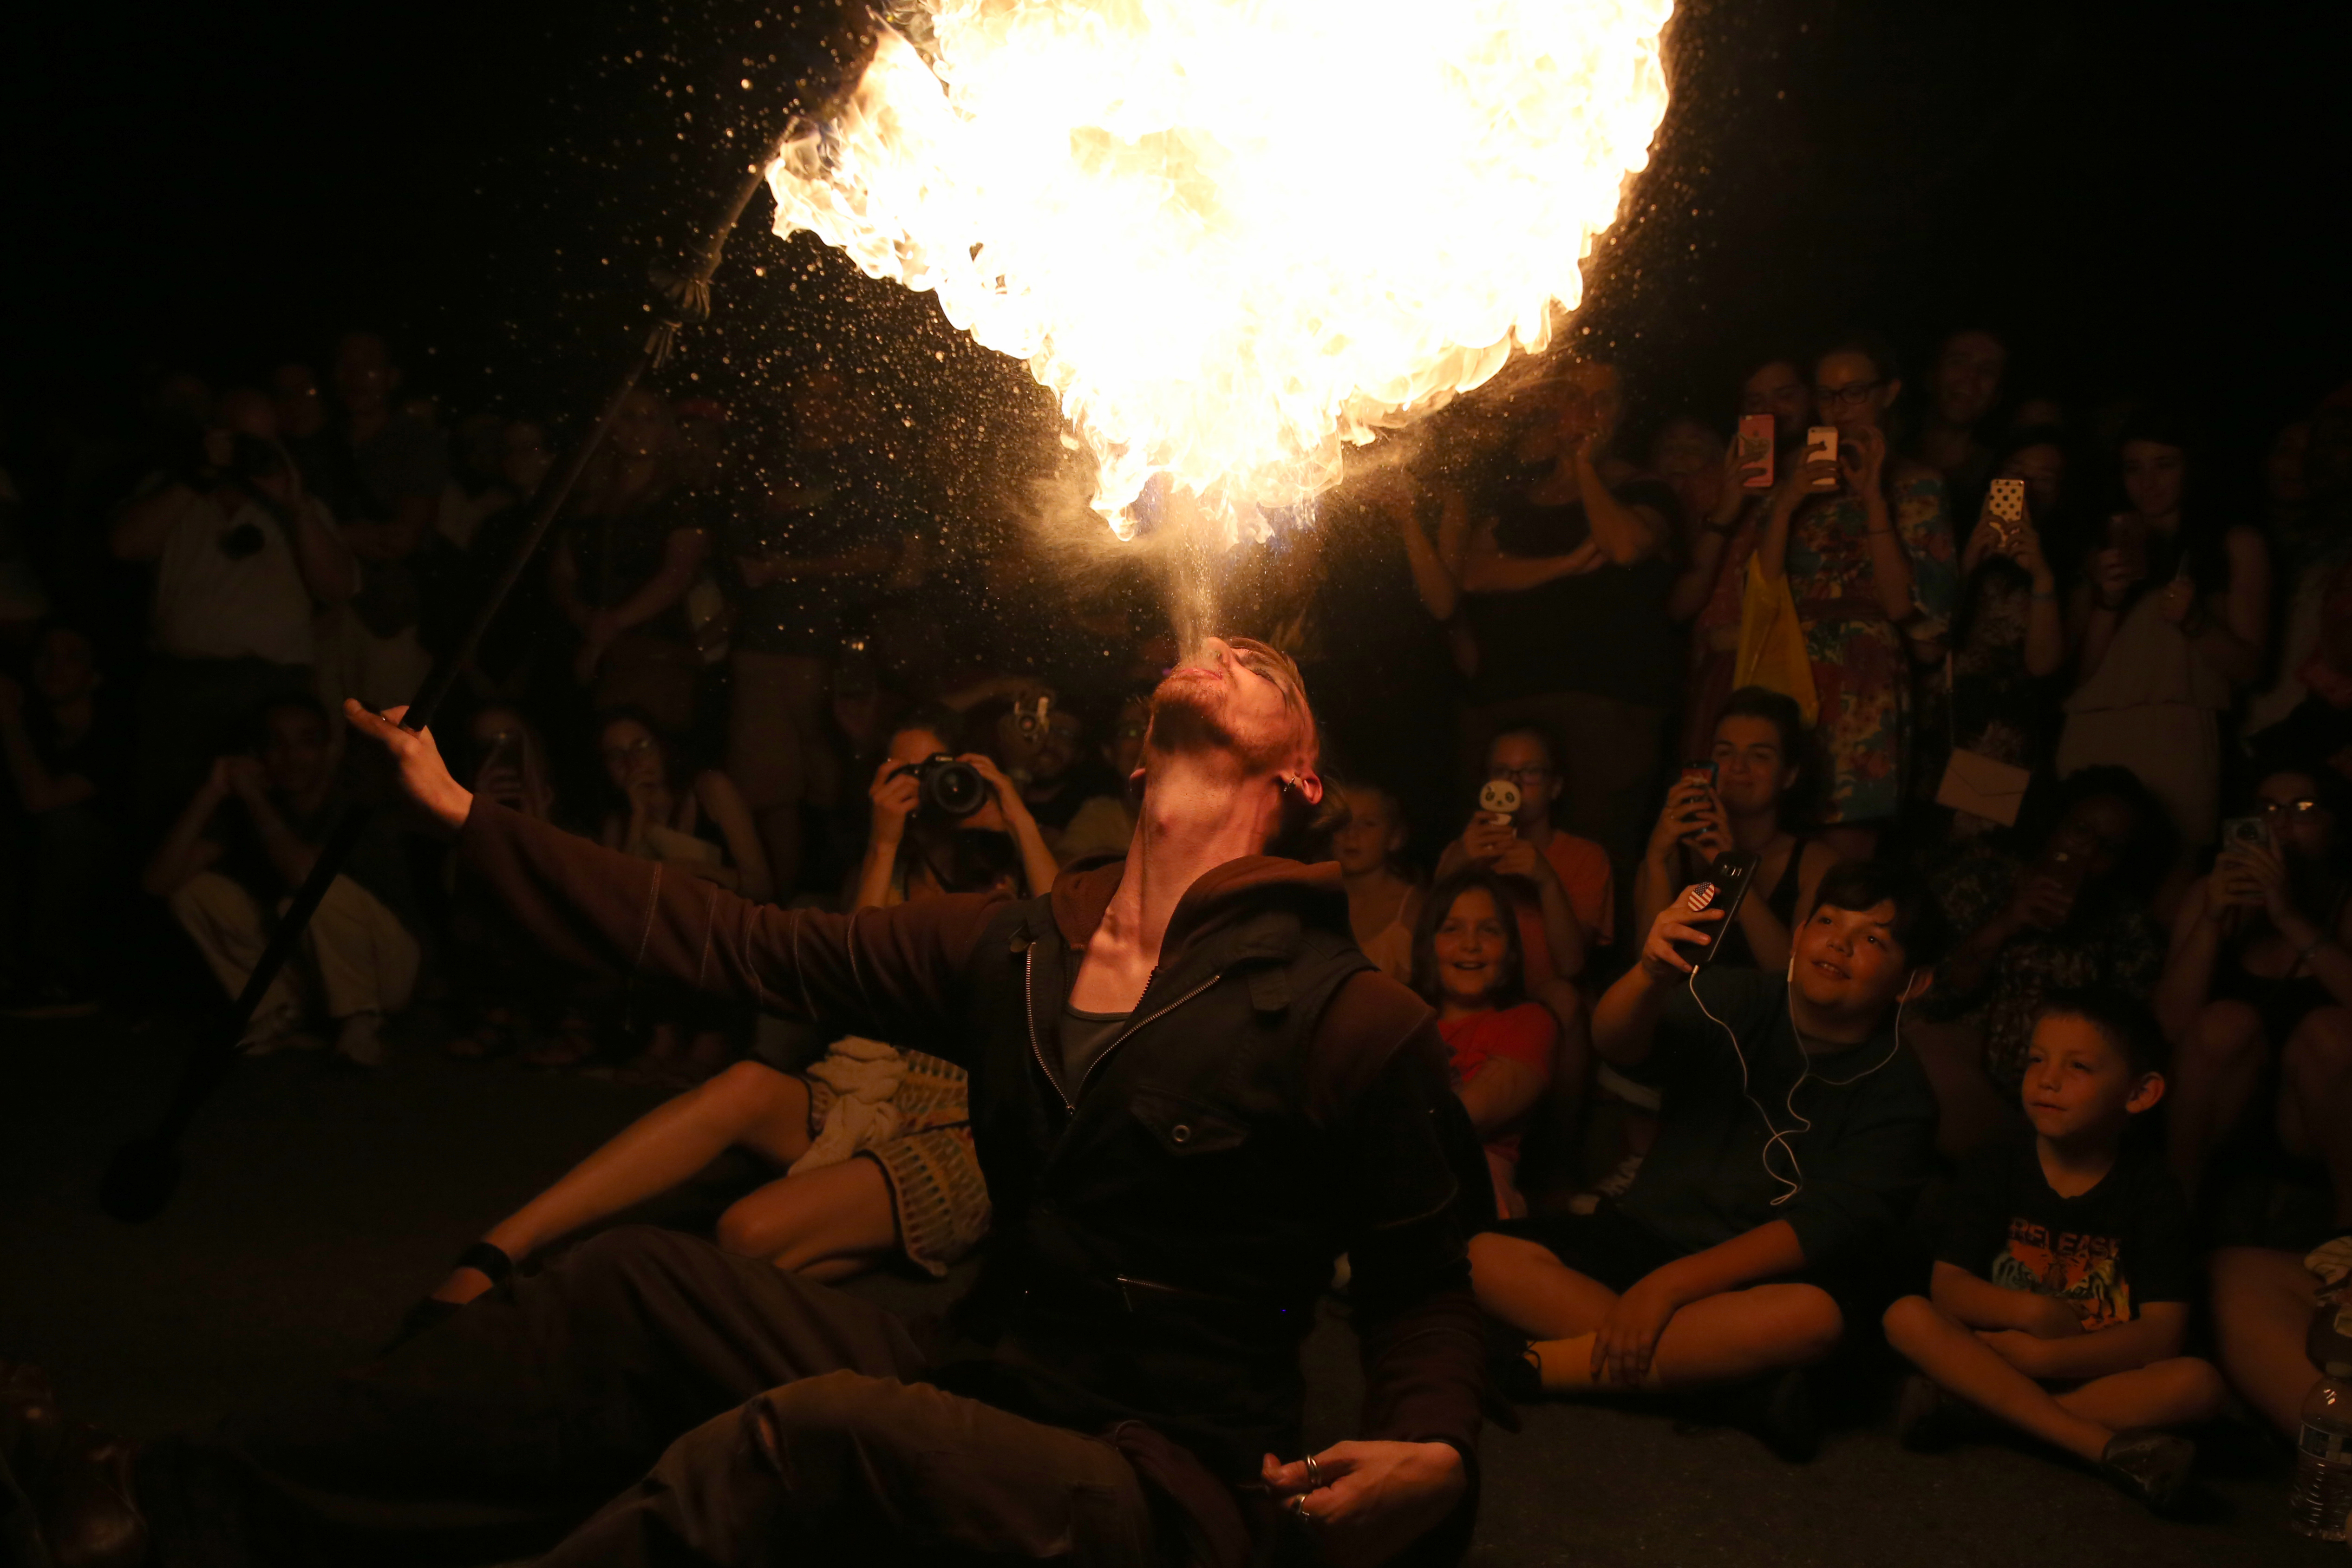 September, 2017. A performer breathes fire at an Art All Night event in Dupont Circle.{&amp;nbsp;} (Amanda Andrade-Rhoades/DC Refined)<p></p>